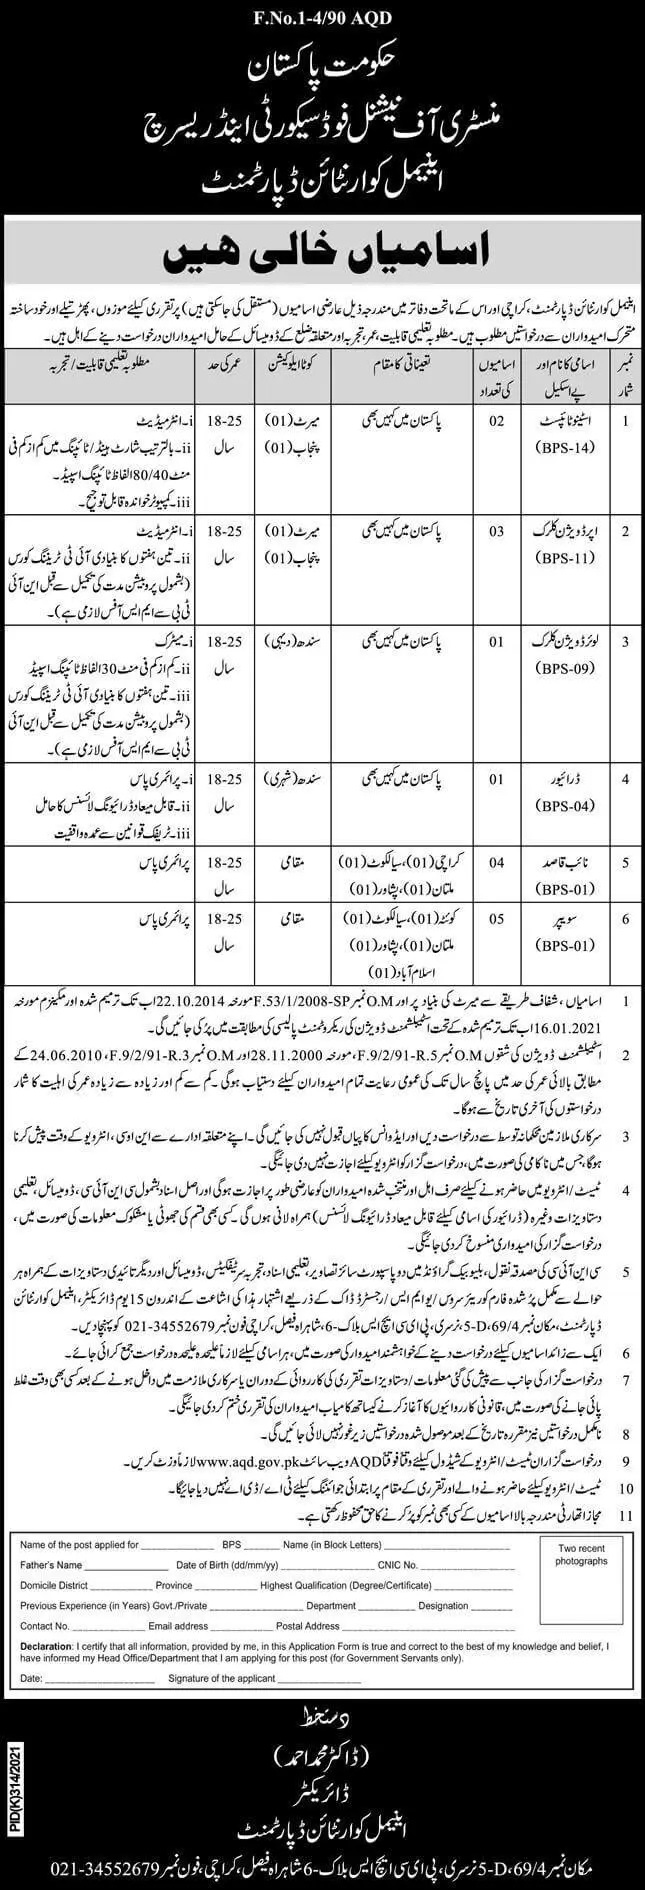 Govt of Sindh Jobs At MNFSR Ministry of National Food Security and Research